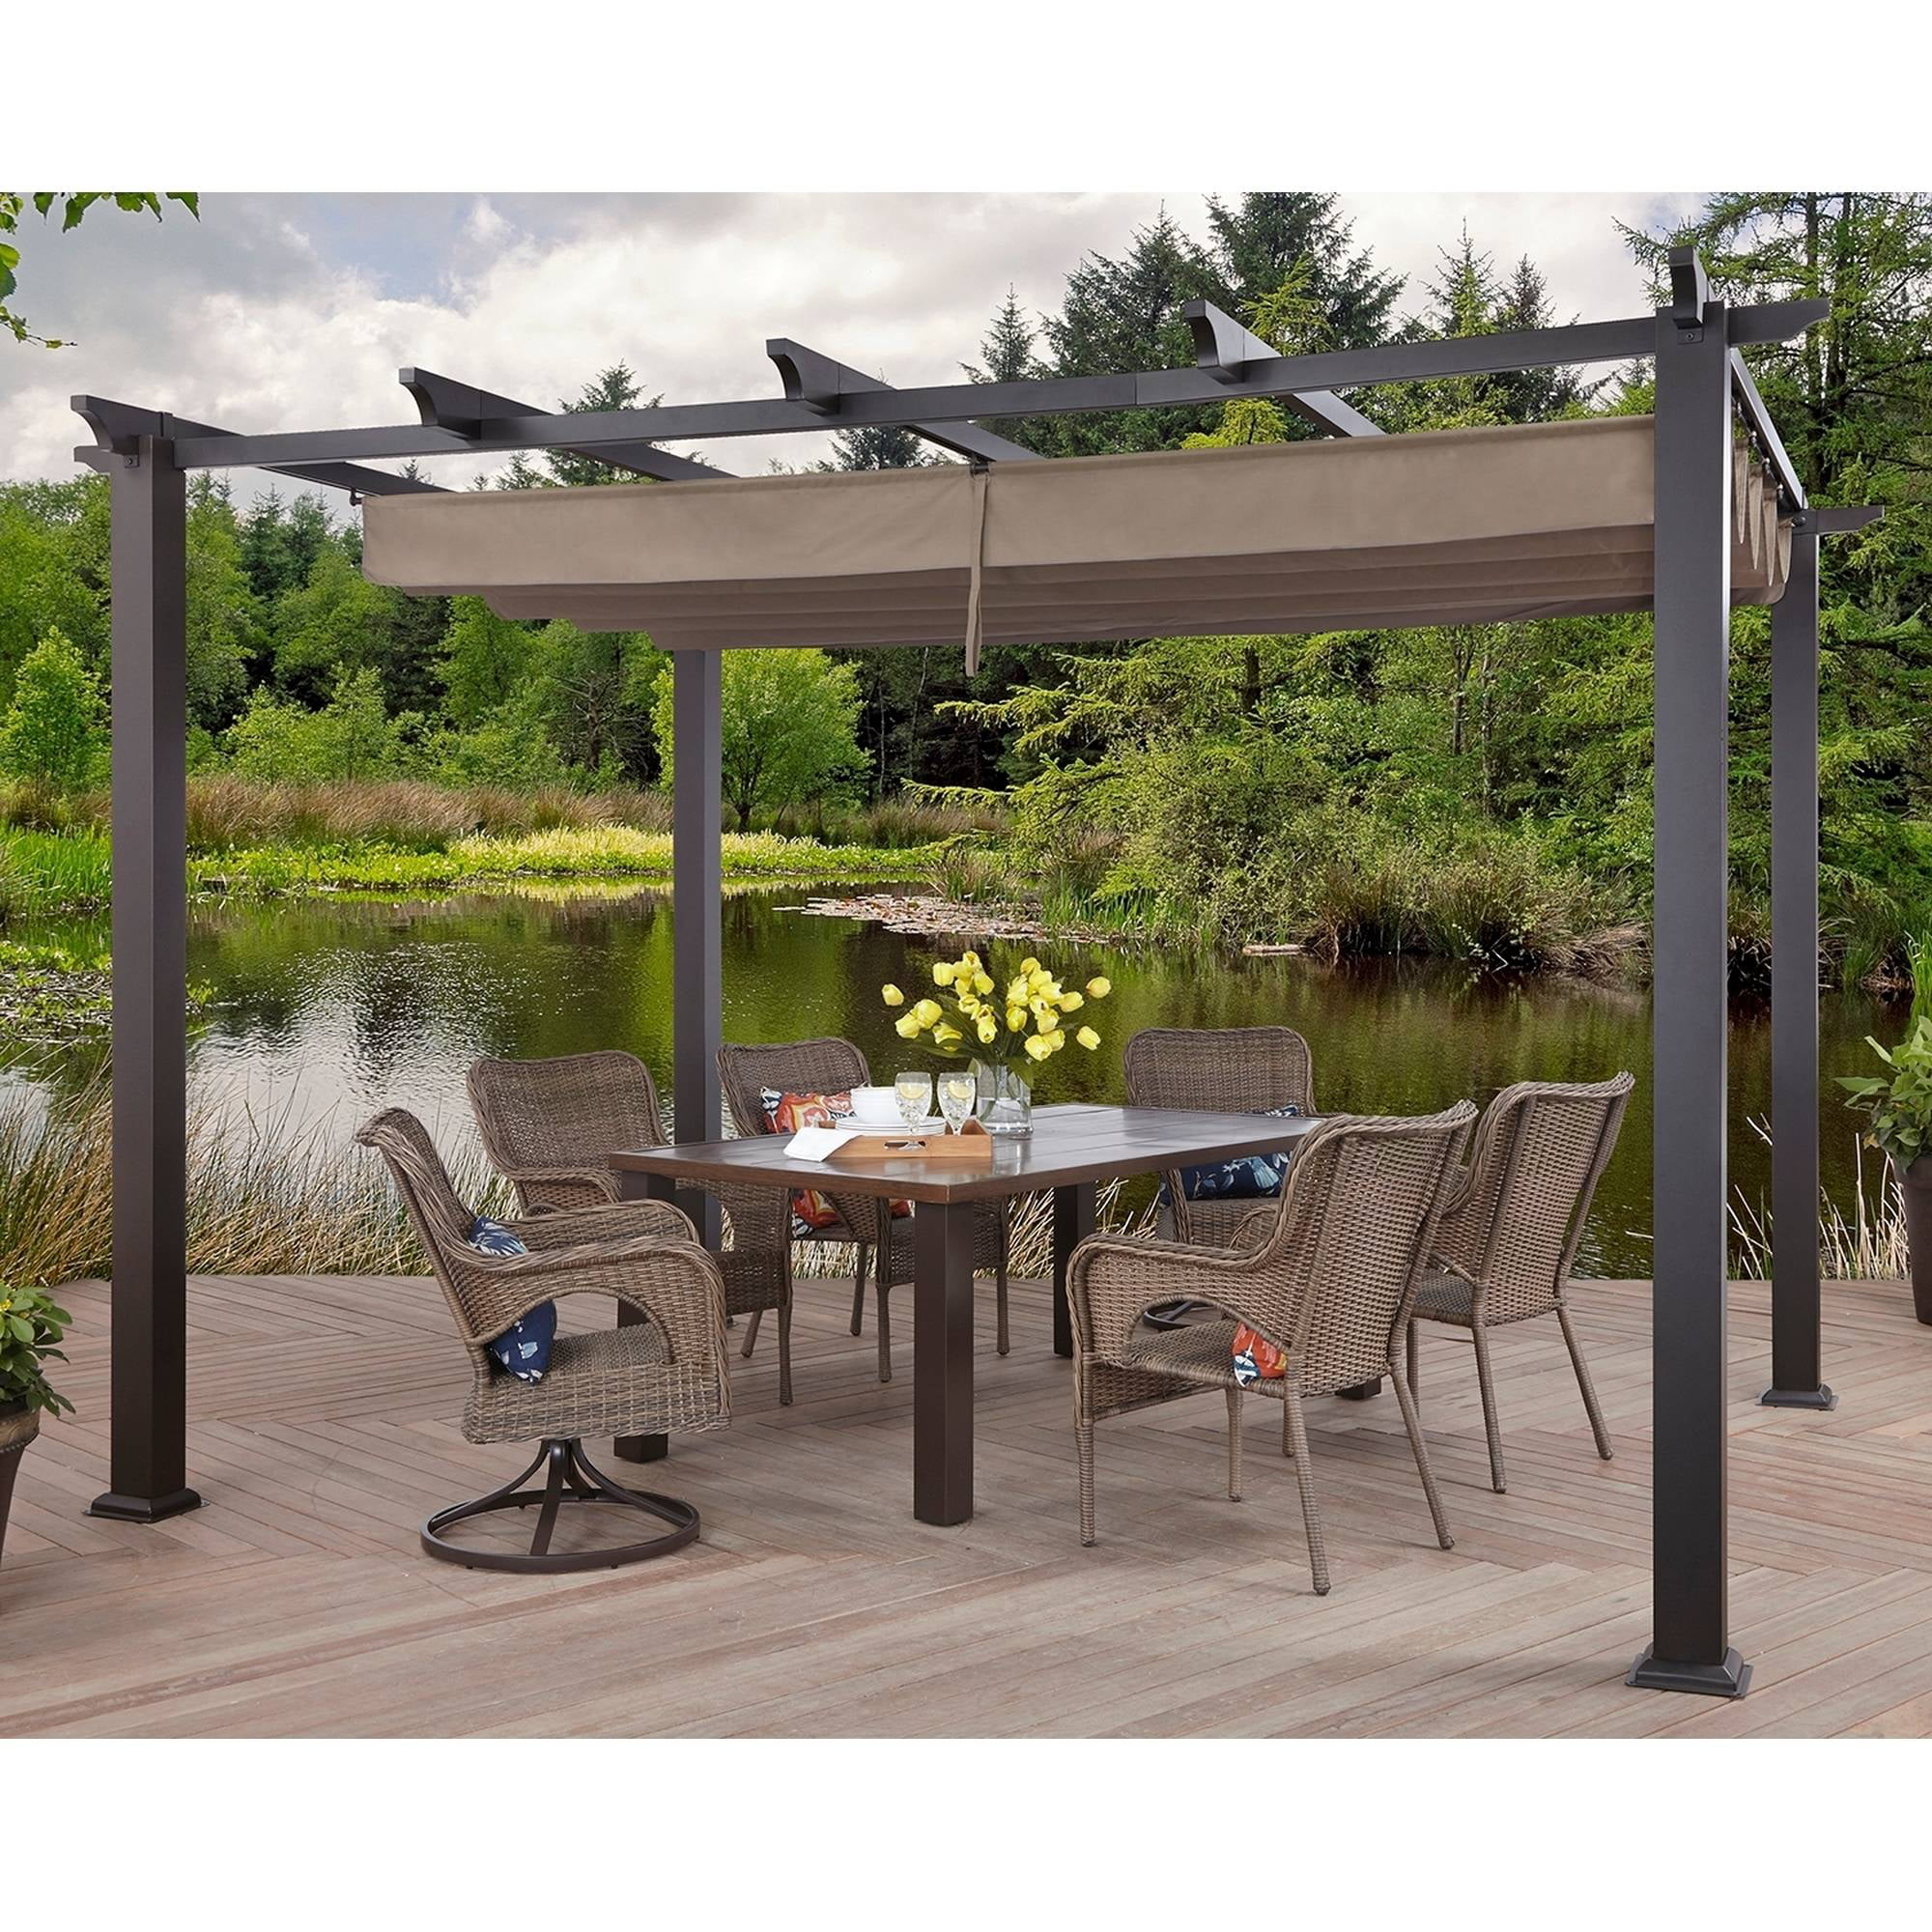 Better Homes and Gardens Meritmoor Aluminum Steel Pergola with Single-Finish, 10' x 12' (304.8 cm x 365.76 cm) by